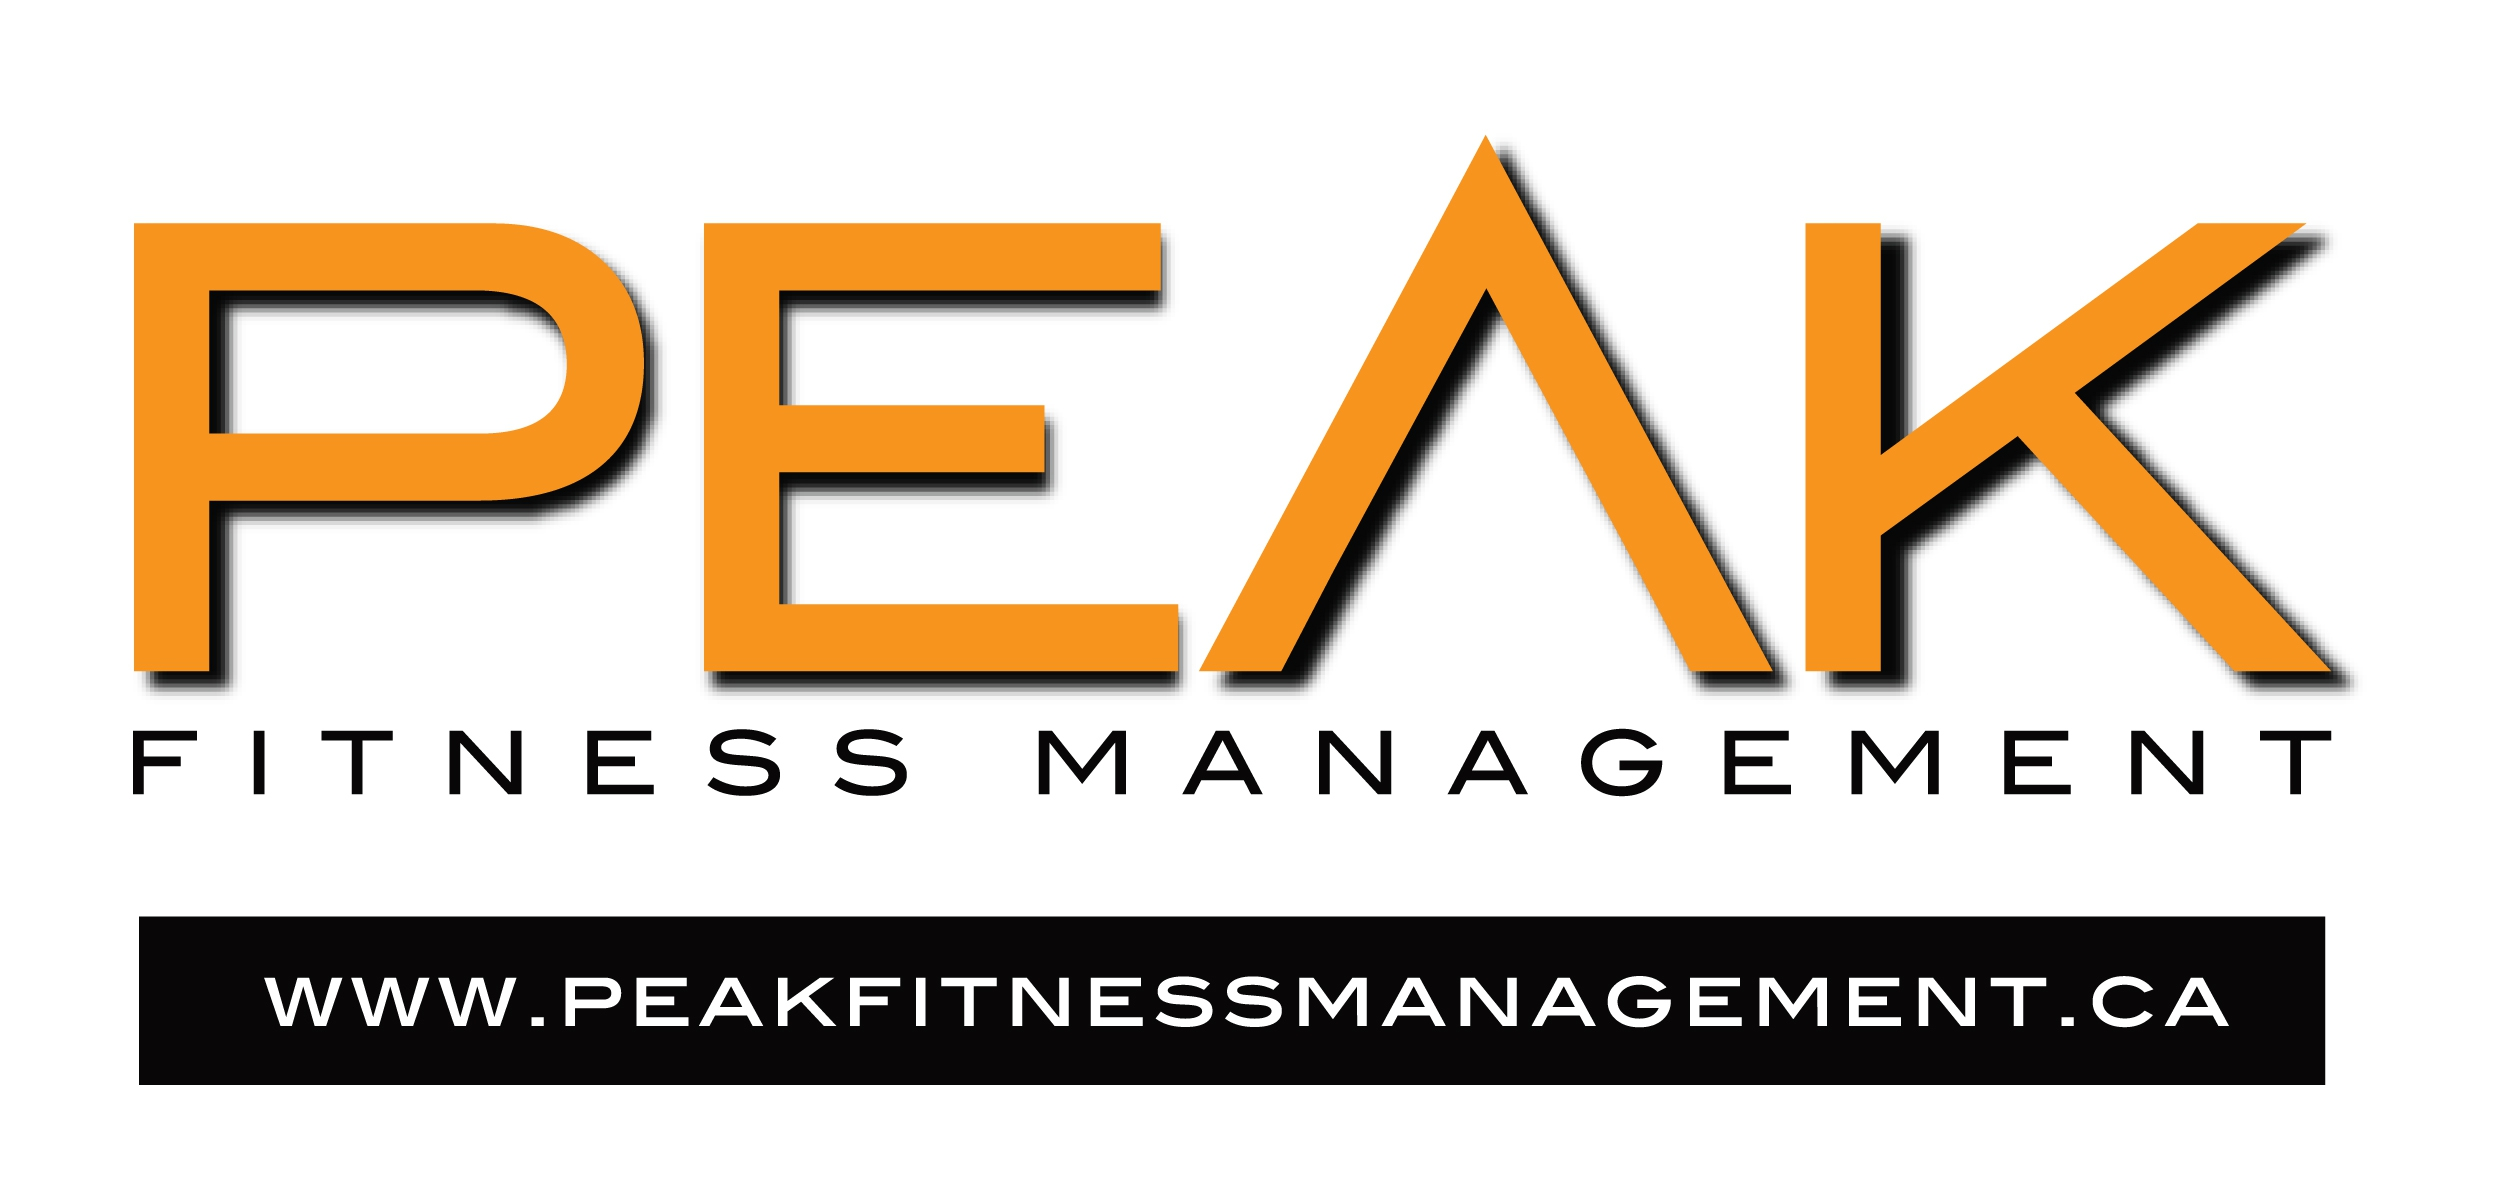 Peak Fitness Management company